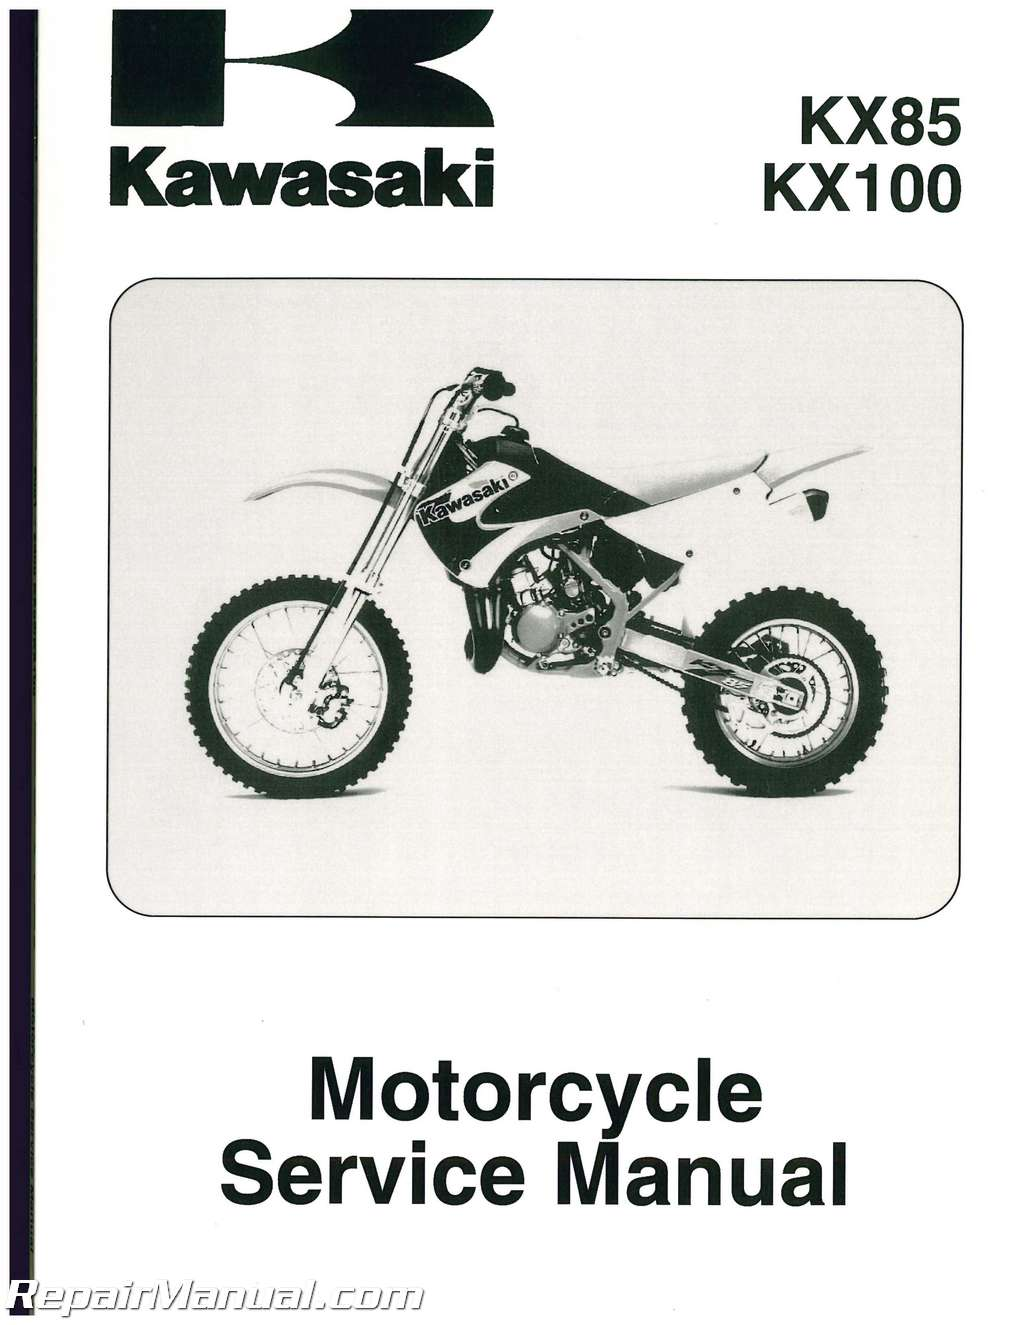 Array - 2001 2008 kawasaki kx85 kx100 motorcycle service manual rh  repairmanual ...